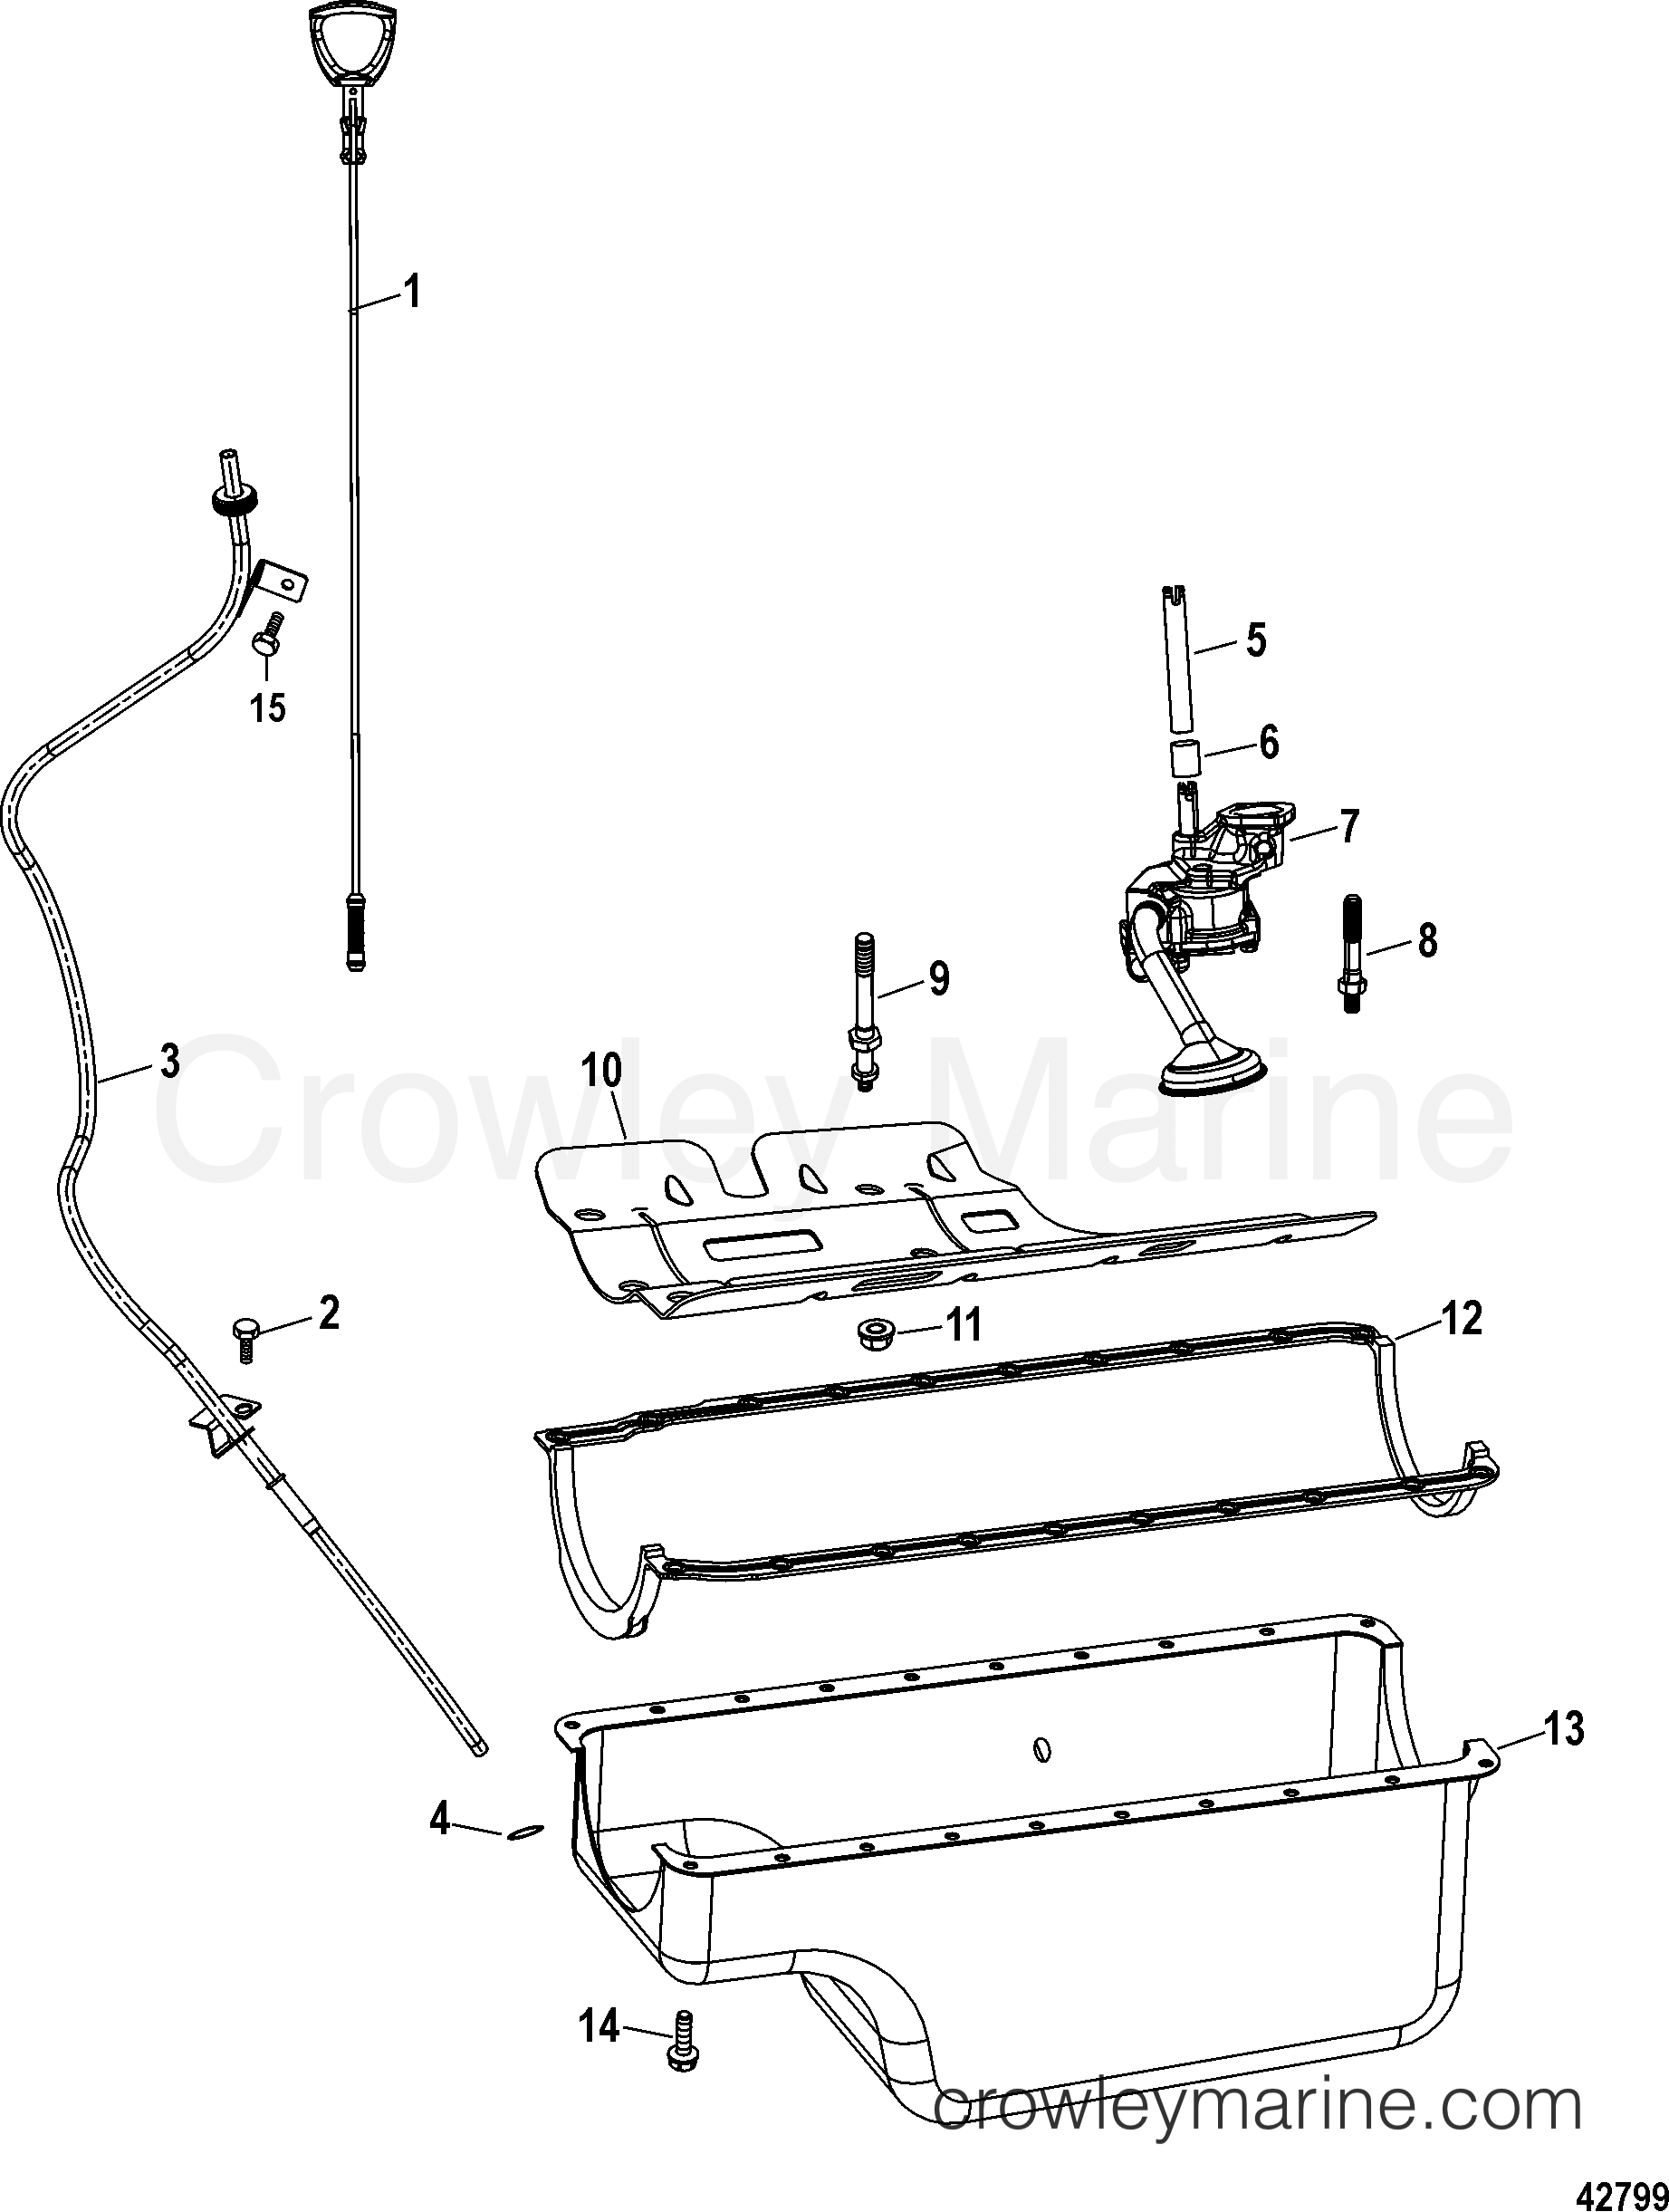 OIL PAN AND OIL PUMP - 1998 Mercury Inboard Engine 8 2L [DTS